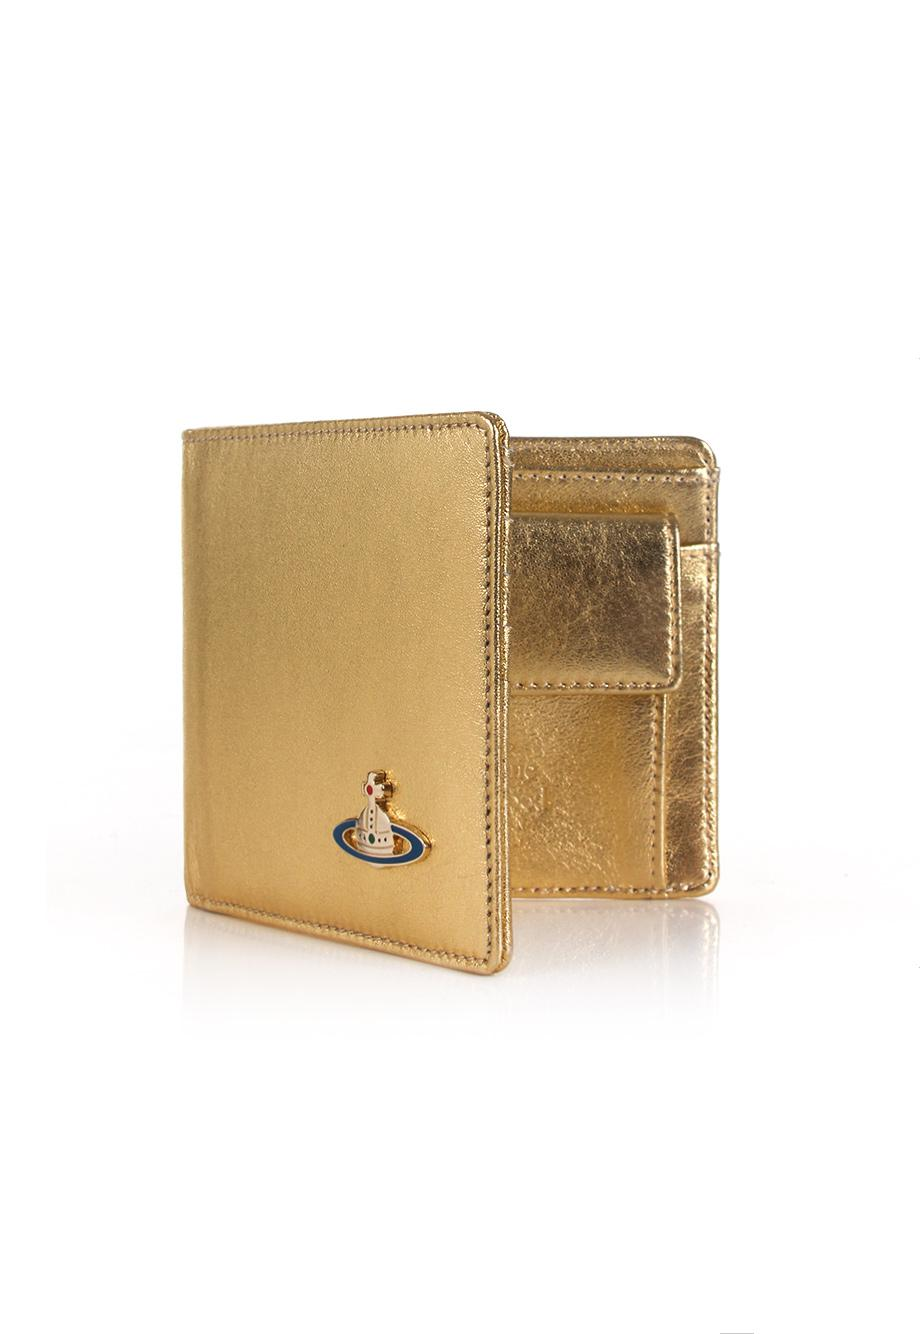 c488db7aeb7 Vivienne Westwood Nappa 51010009 Wallet With Coin Pocket Gold in ...